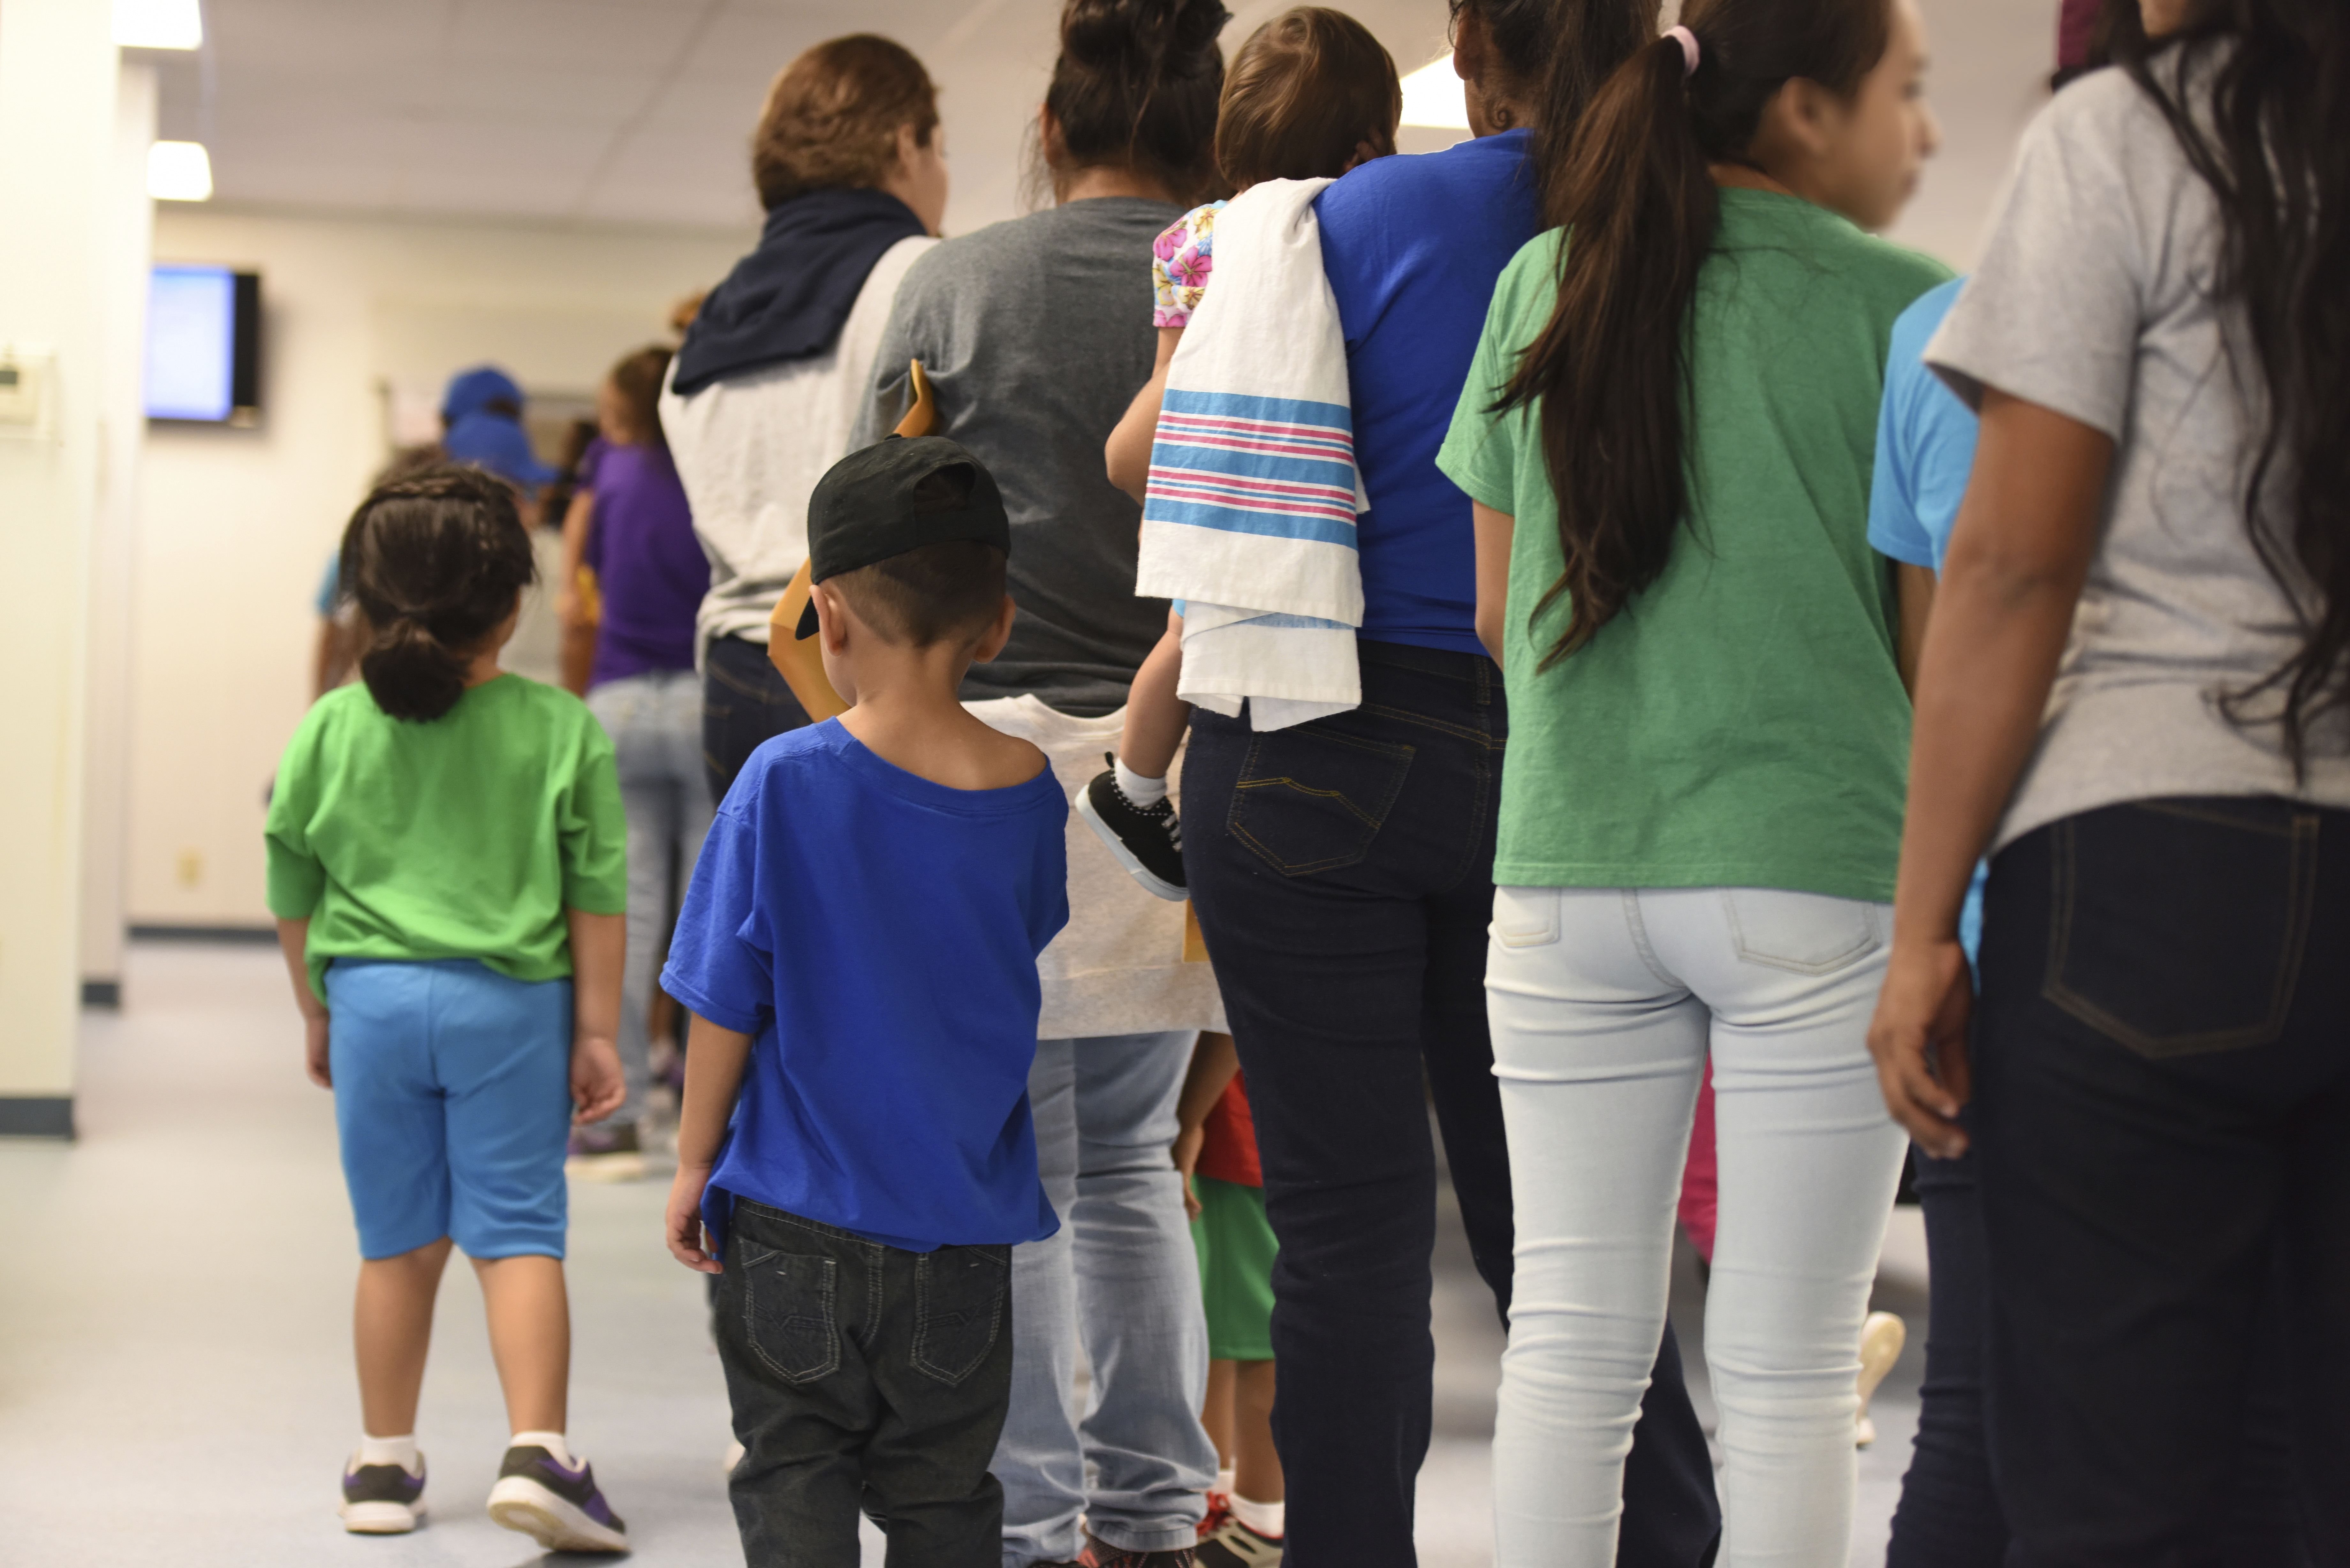 Arrivals at US Southern Border 'Overwhelming the System'